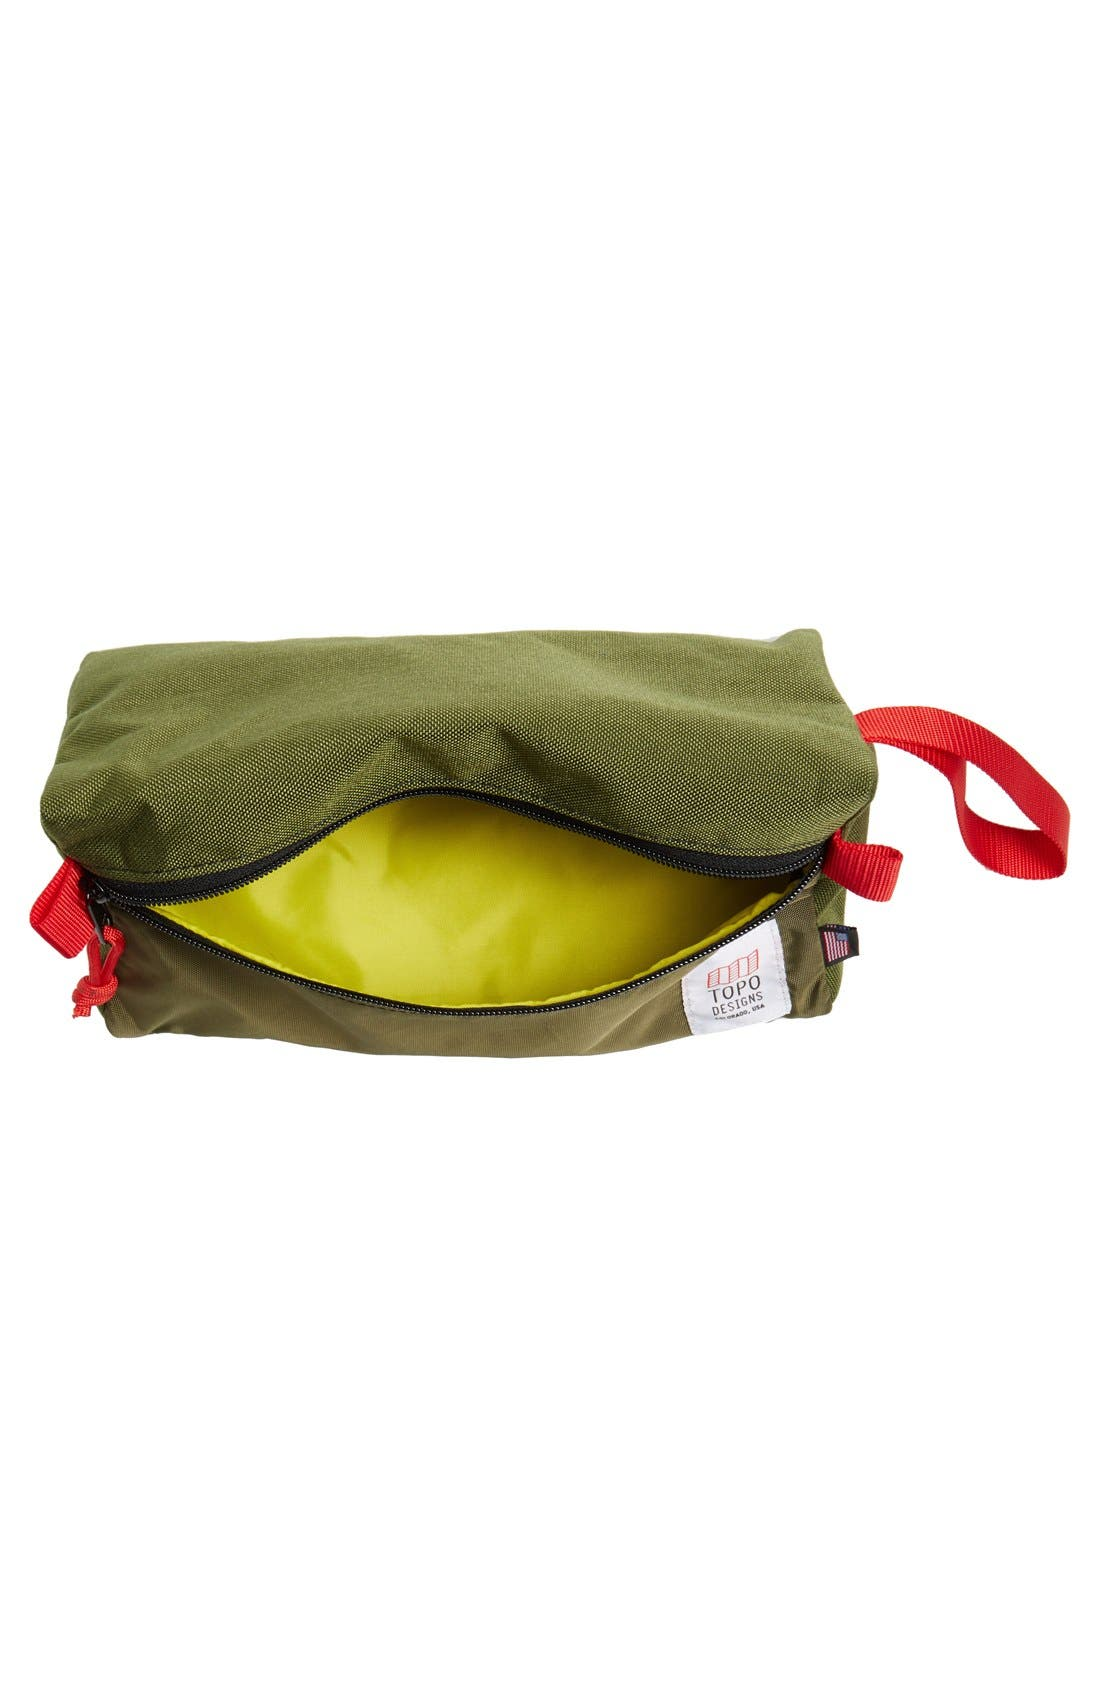 TOPO DESIGNS,                             Dopp Kit,                             Alternate thumbnail 2, color,                             OLIVE